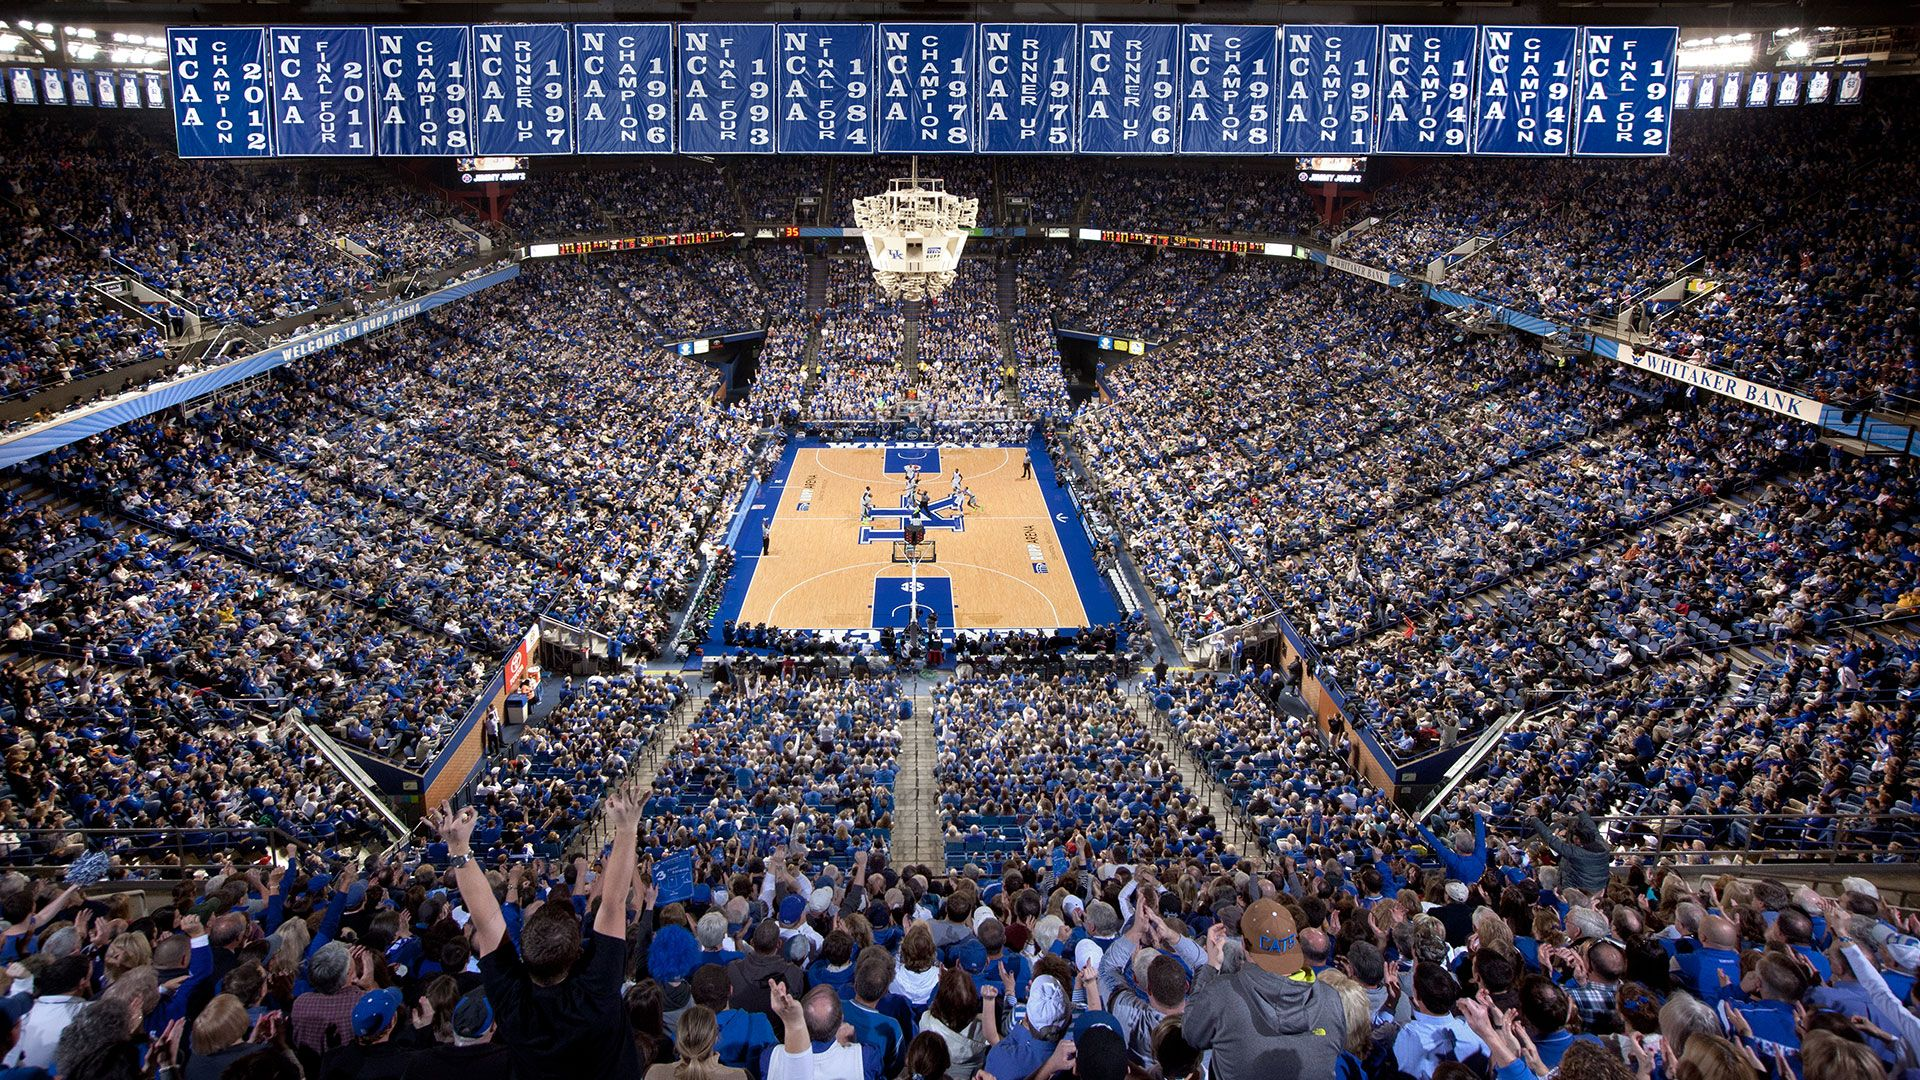 This Is An Image Showing The Inside Of Rupp Arena Which Is Where